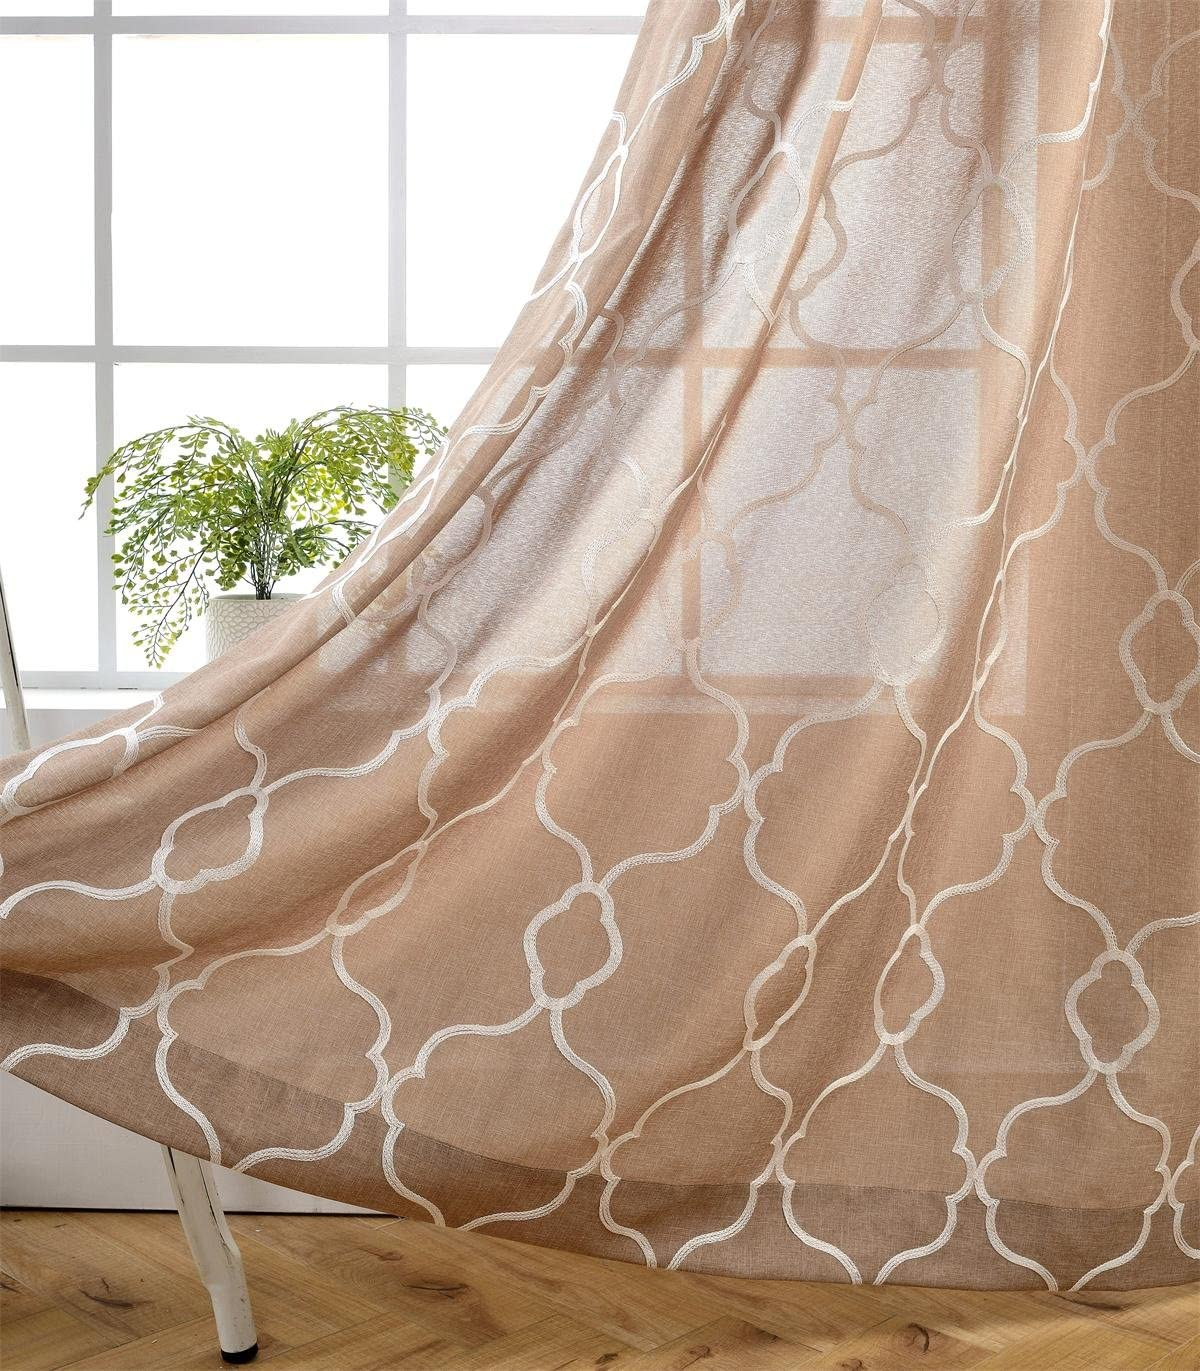 MIUCO Moroccan Embroidery Semi Sheers Curtain Faux Linen Grommet Window Curtains for Office 52 x 95 Inch 2 Panels, Taupe